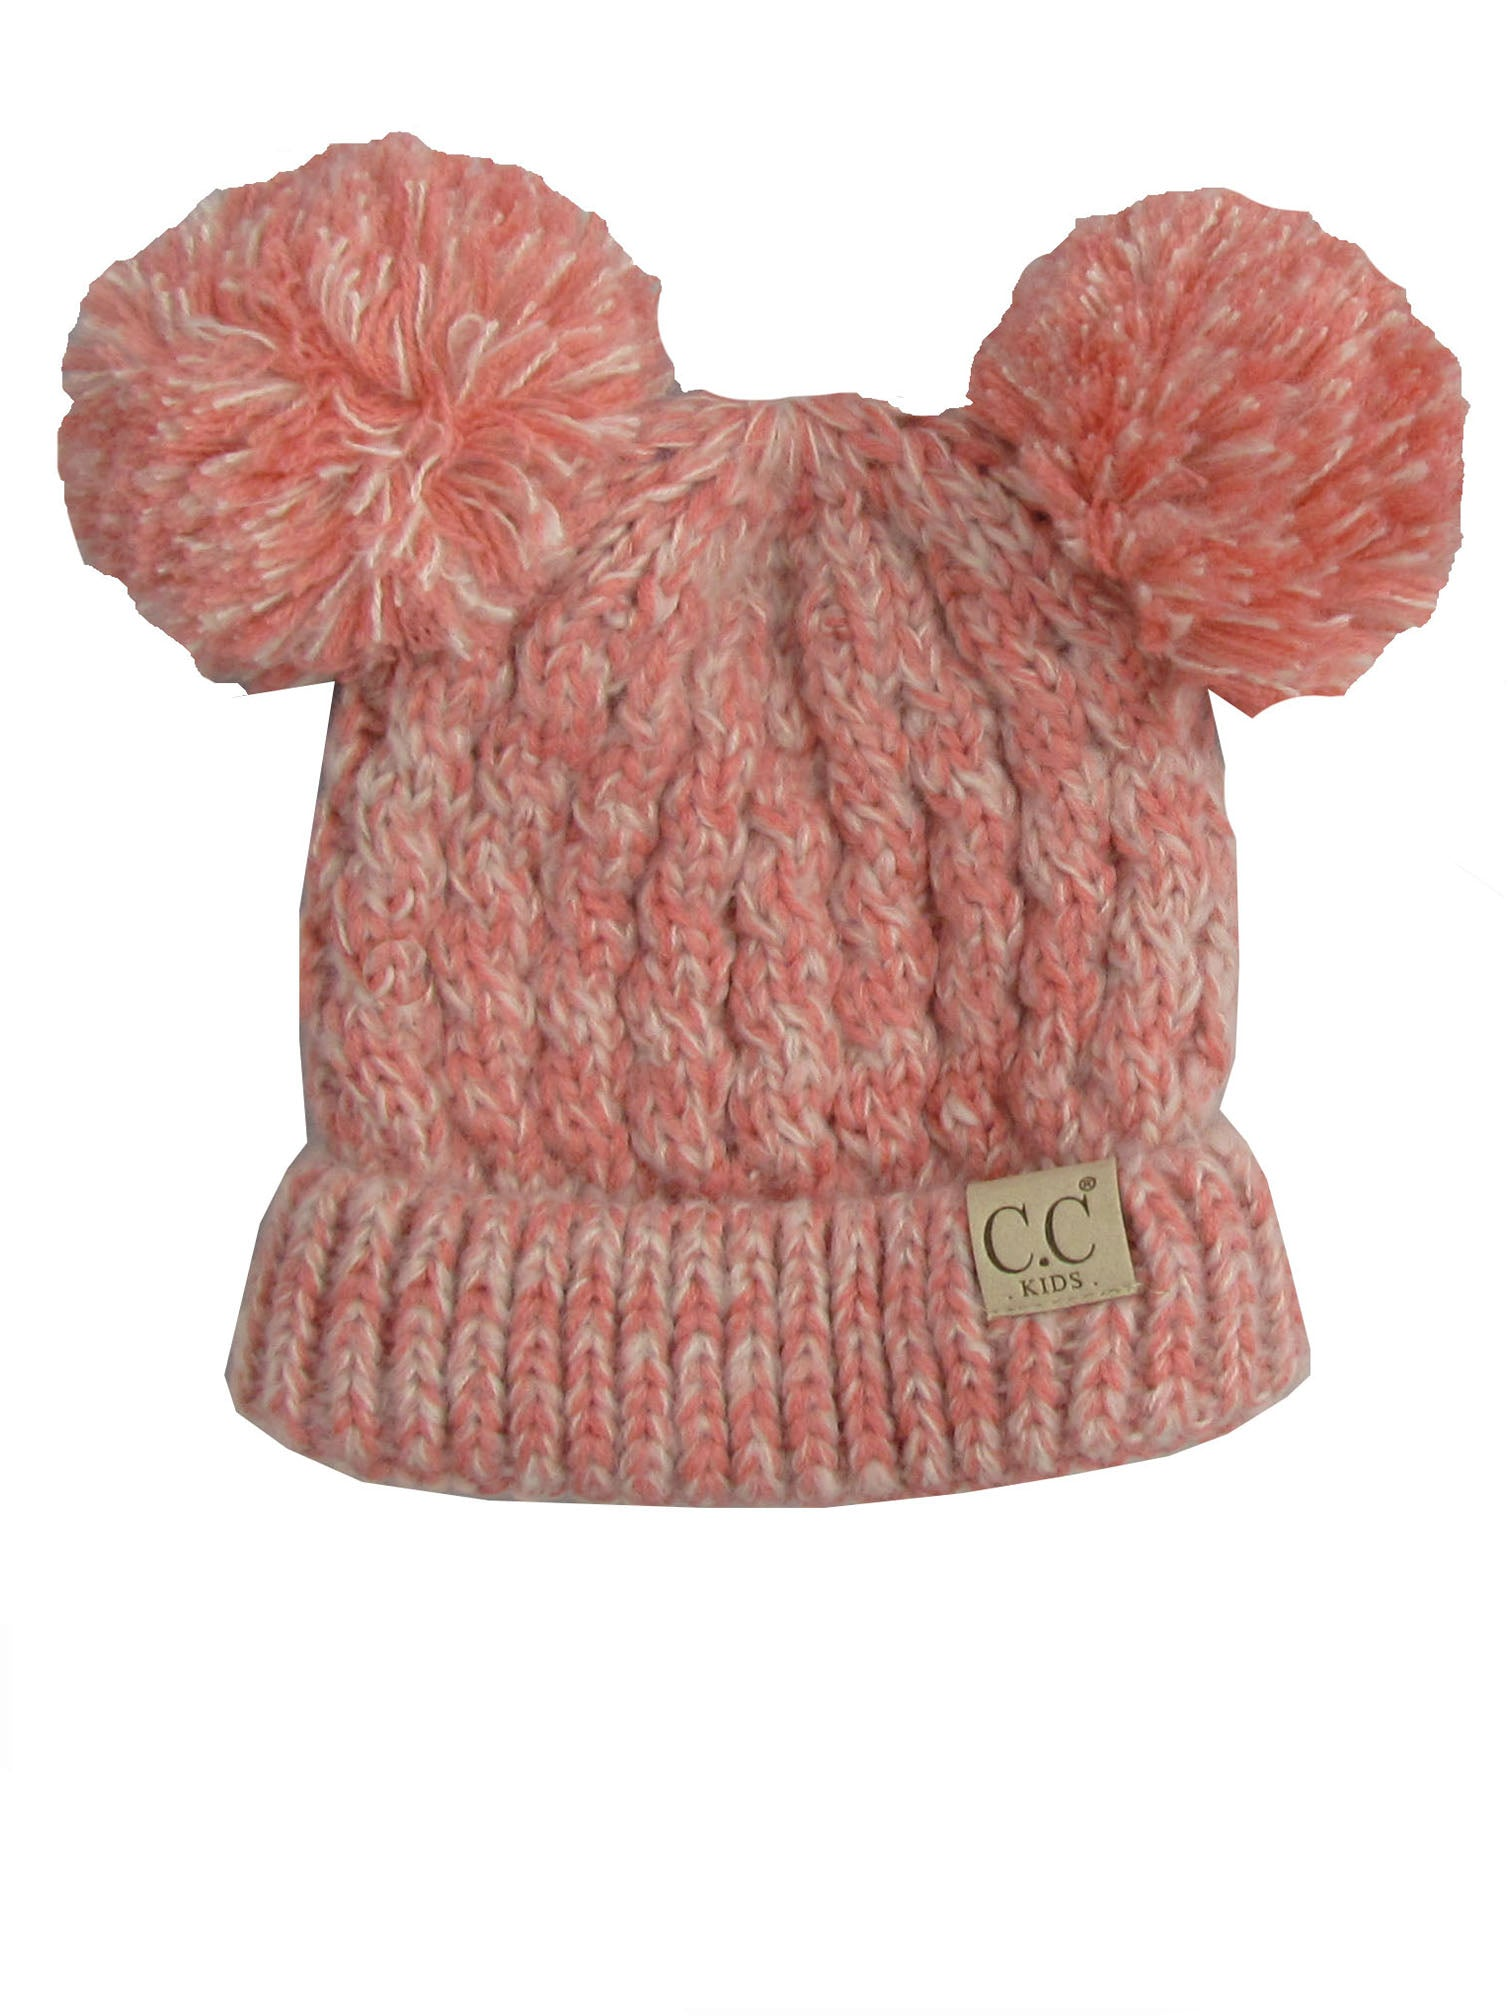 C.C Kid-23 Blush Peach Youth Beanie